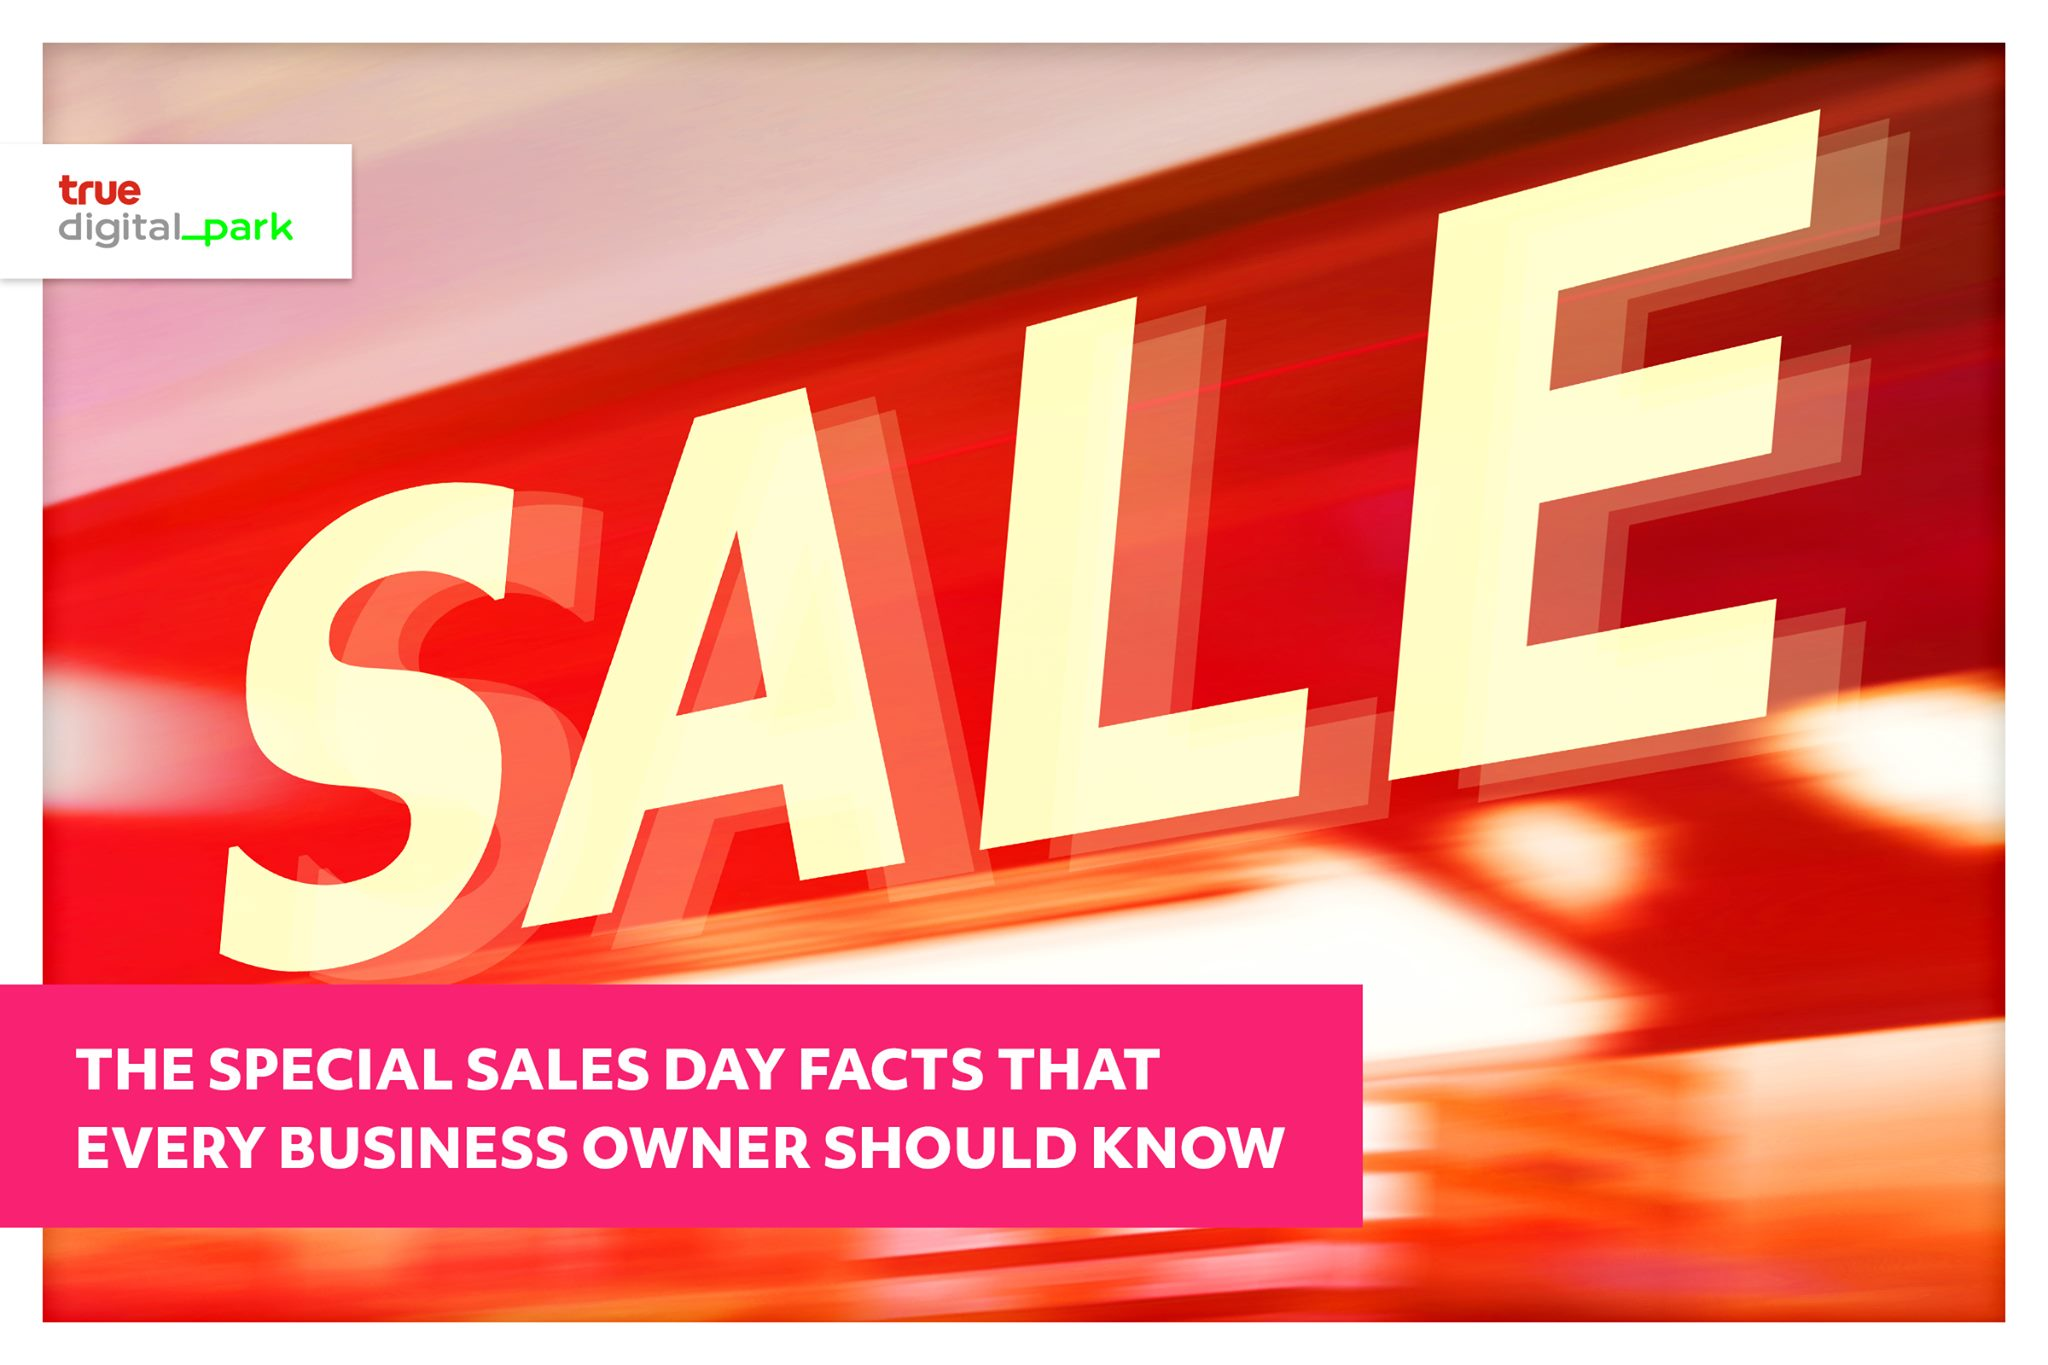 The Special Sales Day Facts That Every Business Owner Should Know